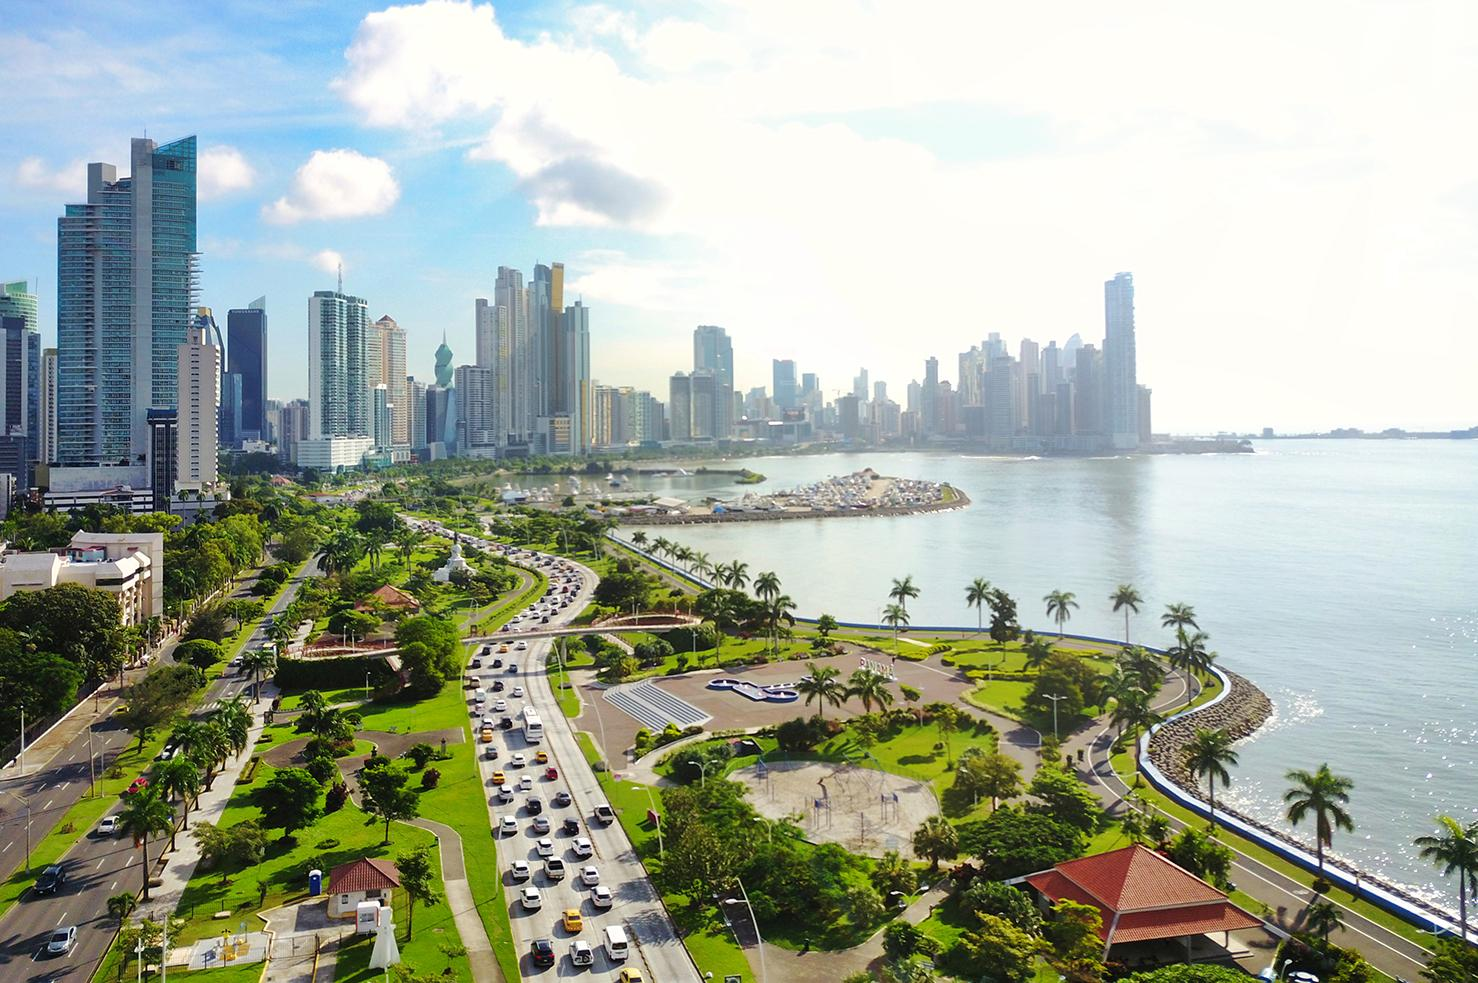 Sunlit views of Panama City's skyline overlooking the water